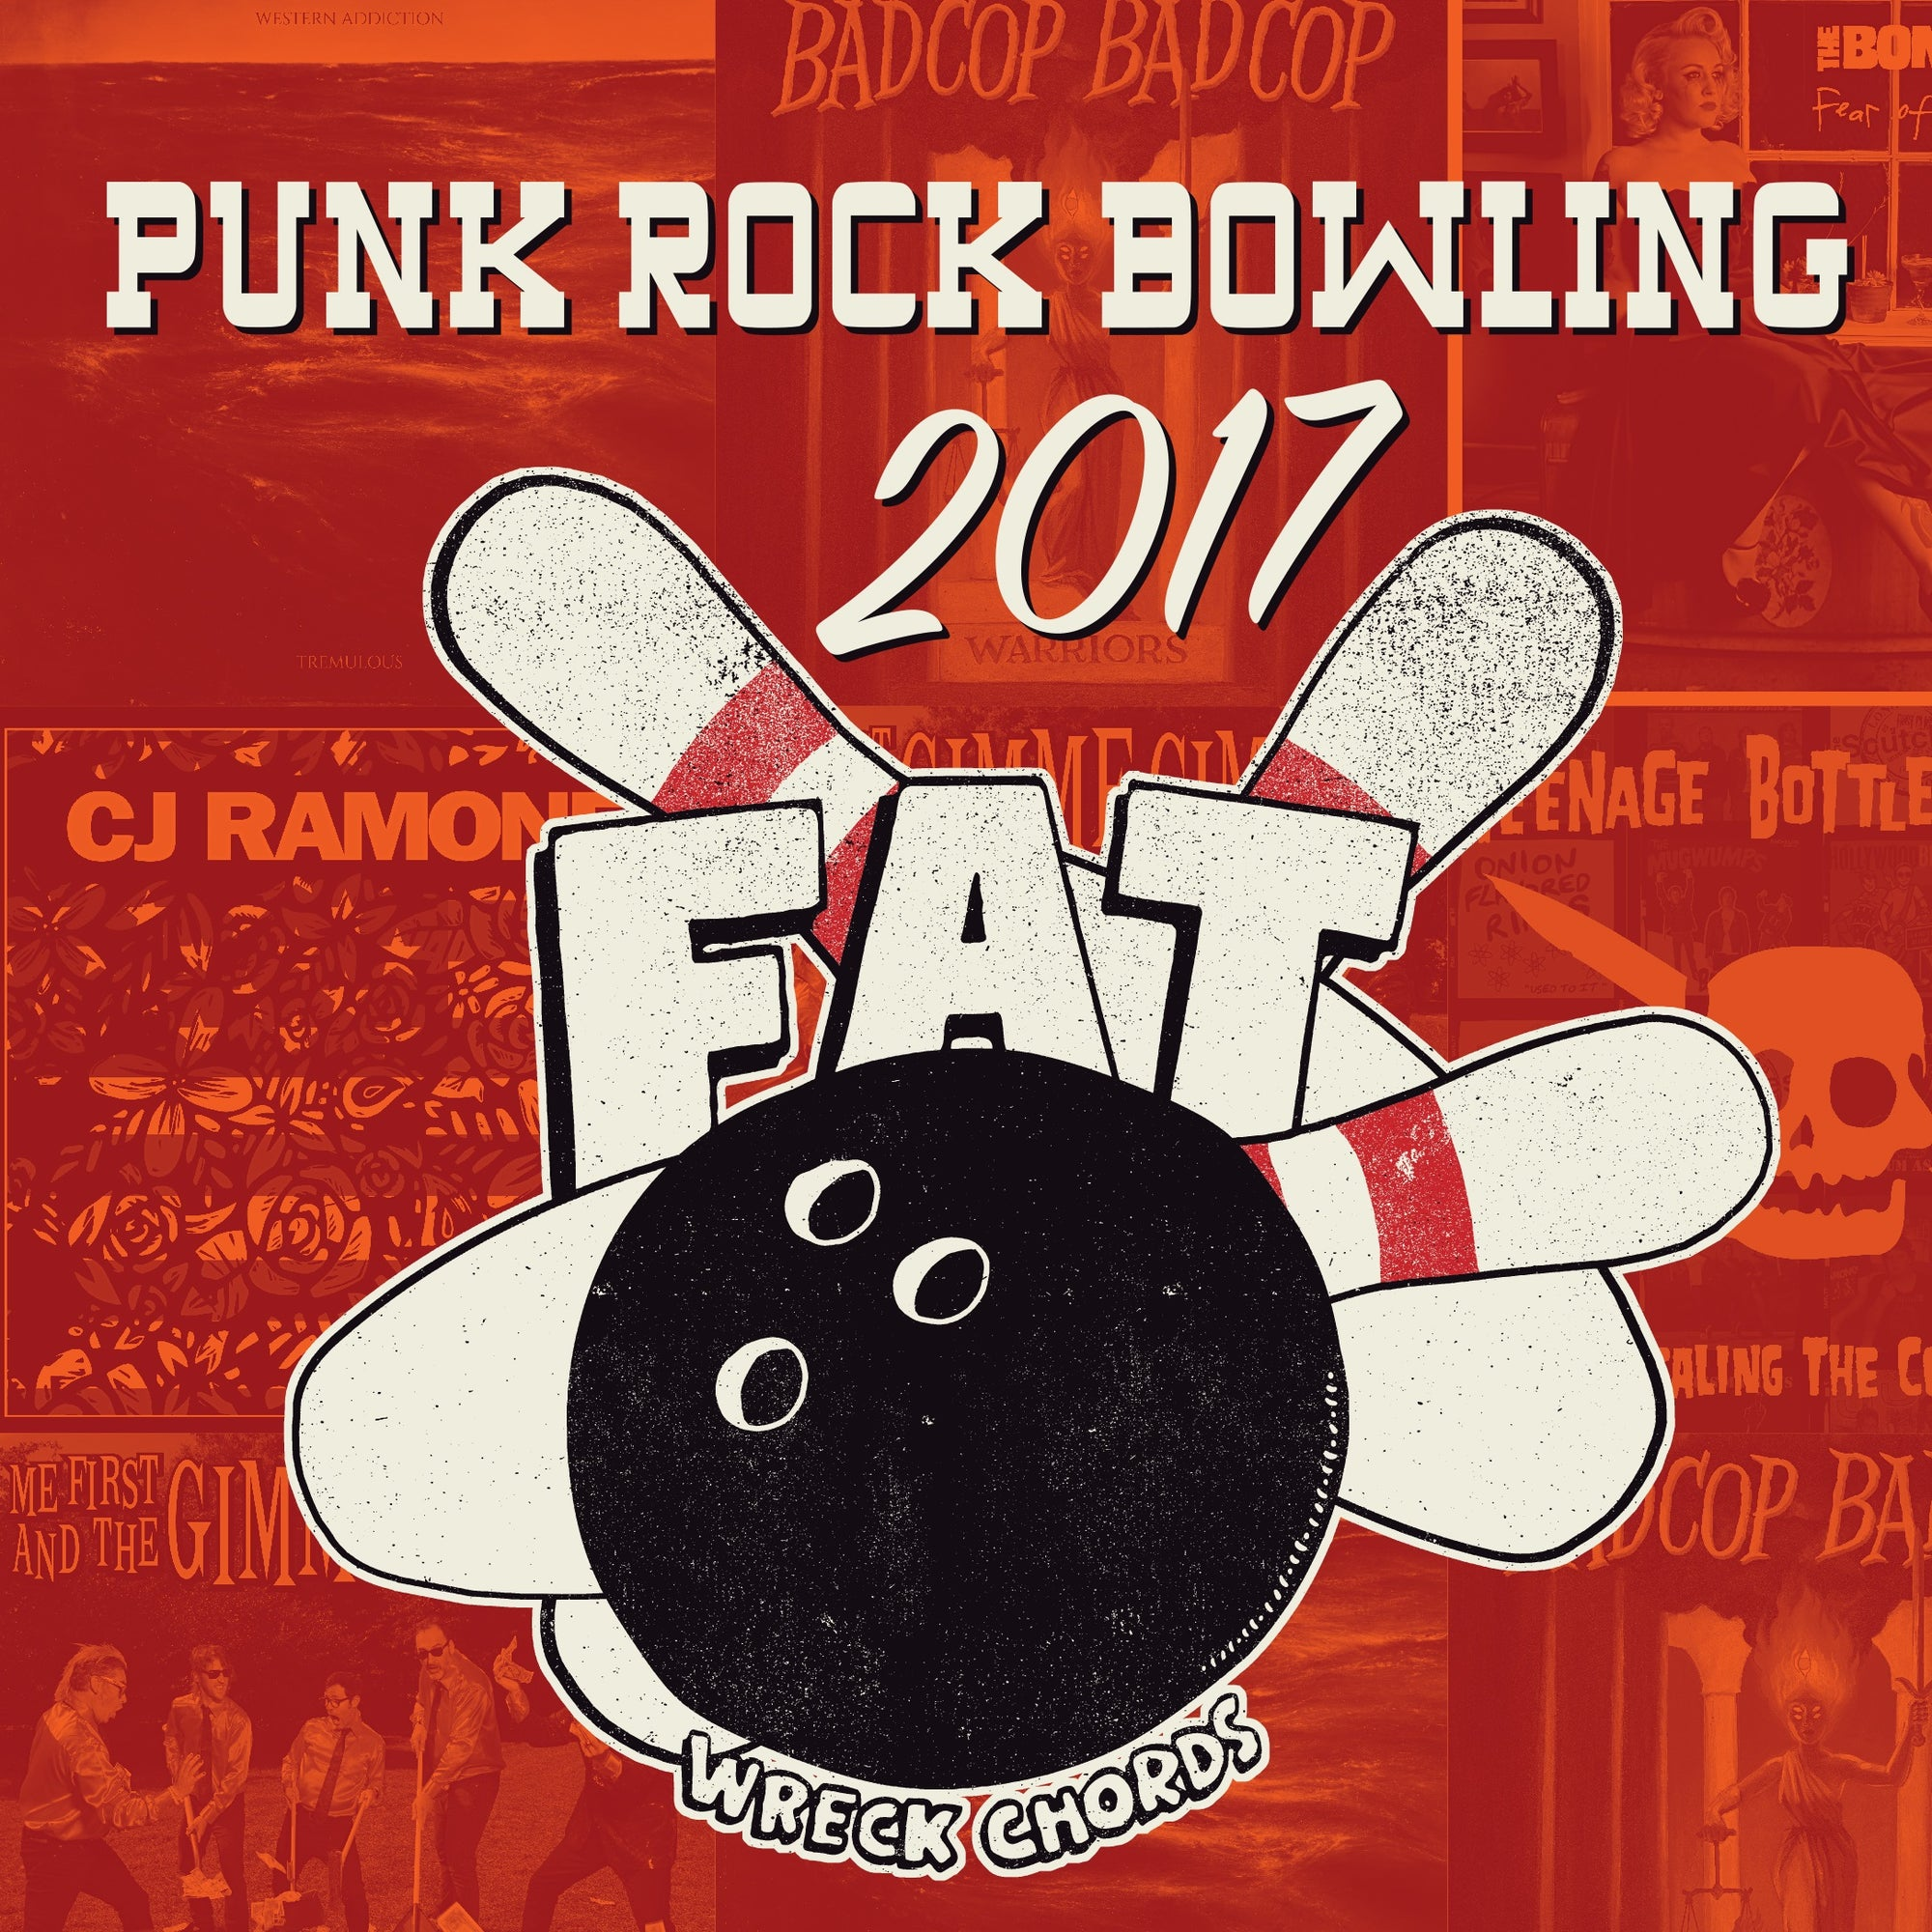 Punk Rock Bowling 2017 Flexi Pack